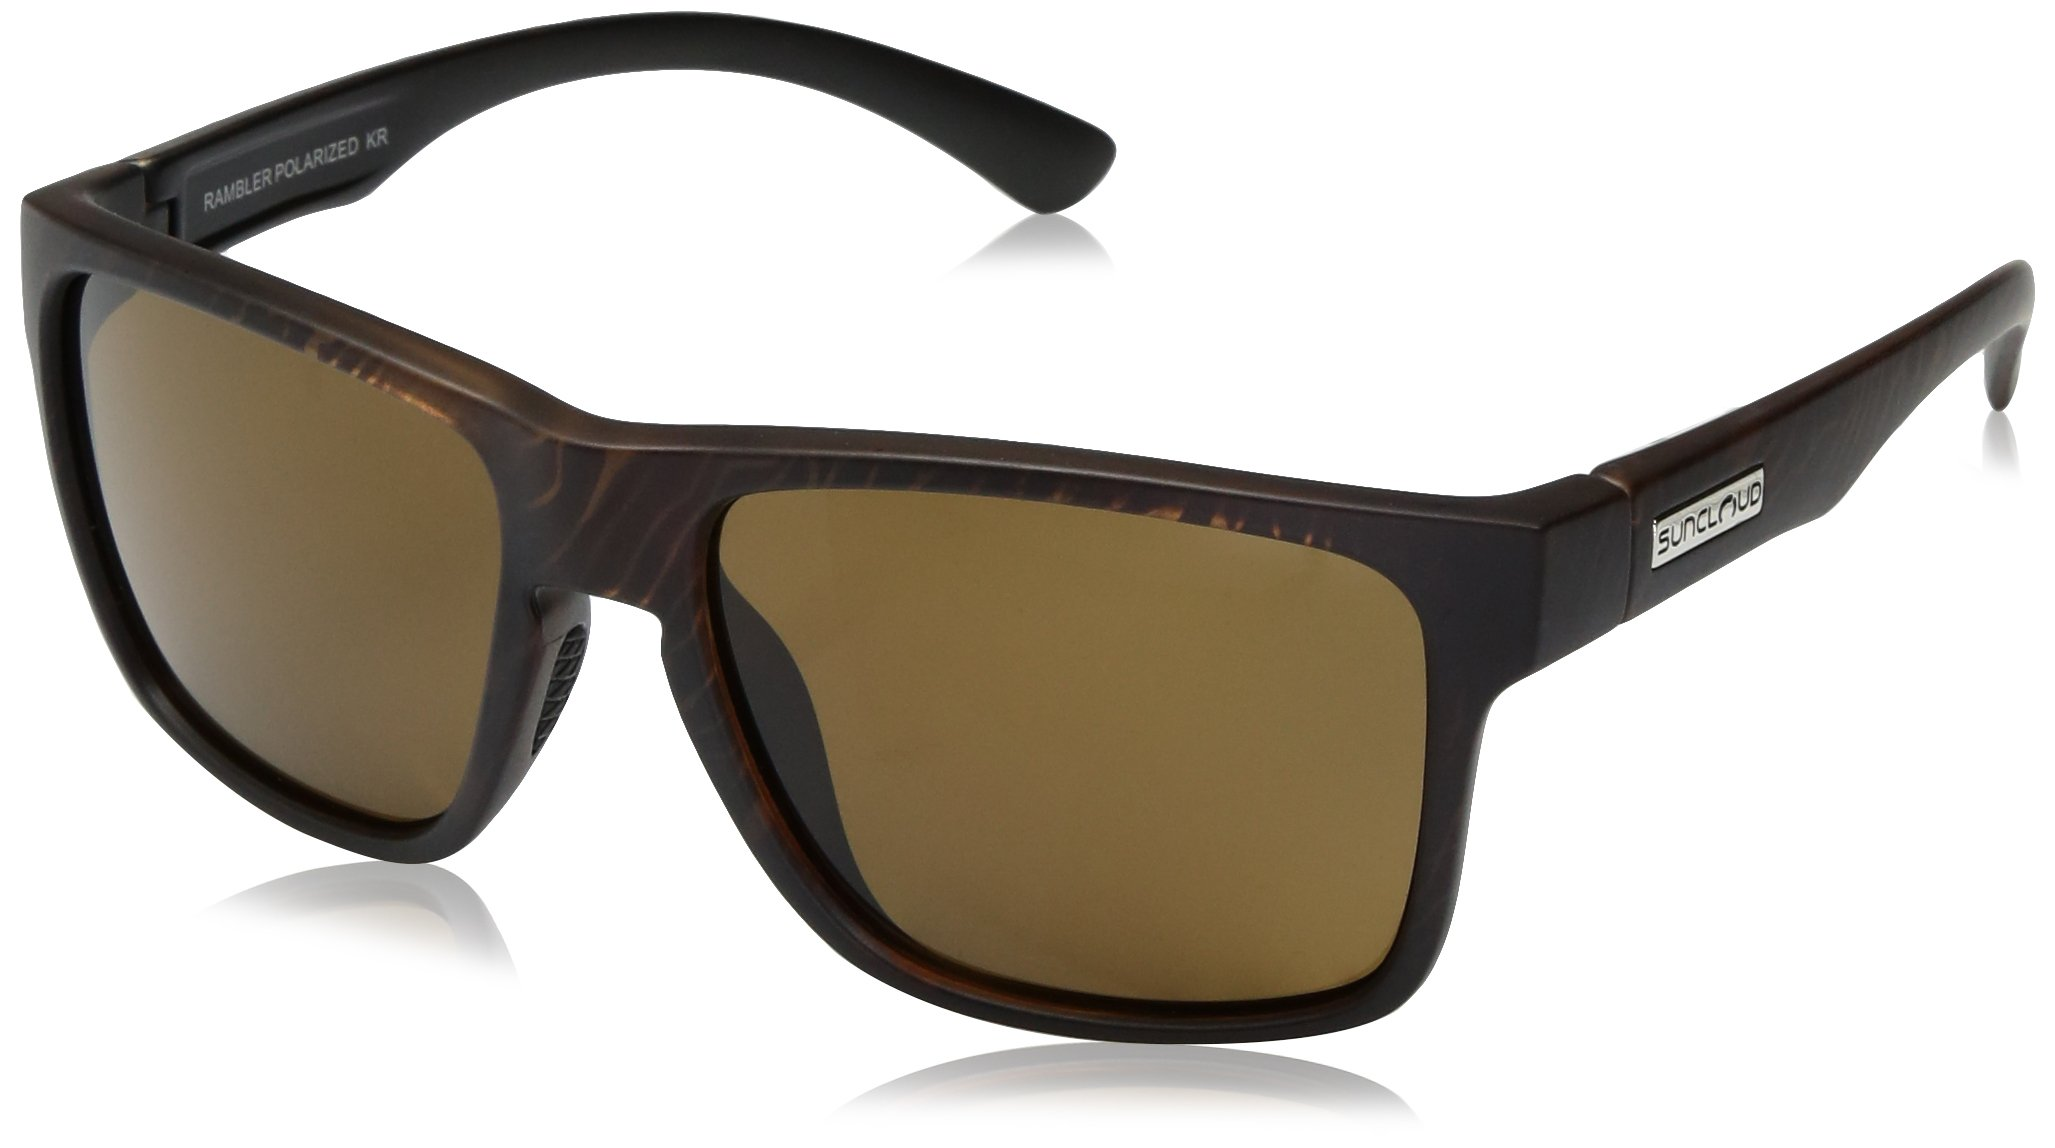 Suncloud Rambler Sunglasses, Blackened Tortoise Frame/Brown Polycarbonate Lens, One Size by Suncloud